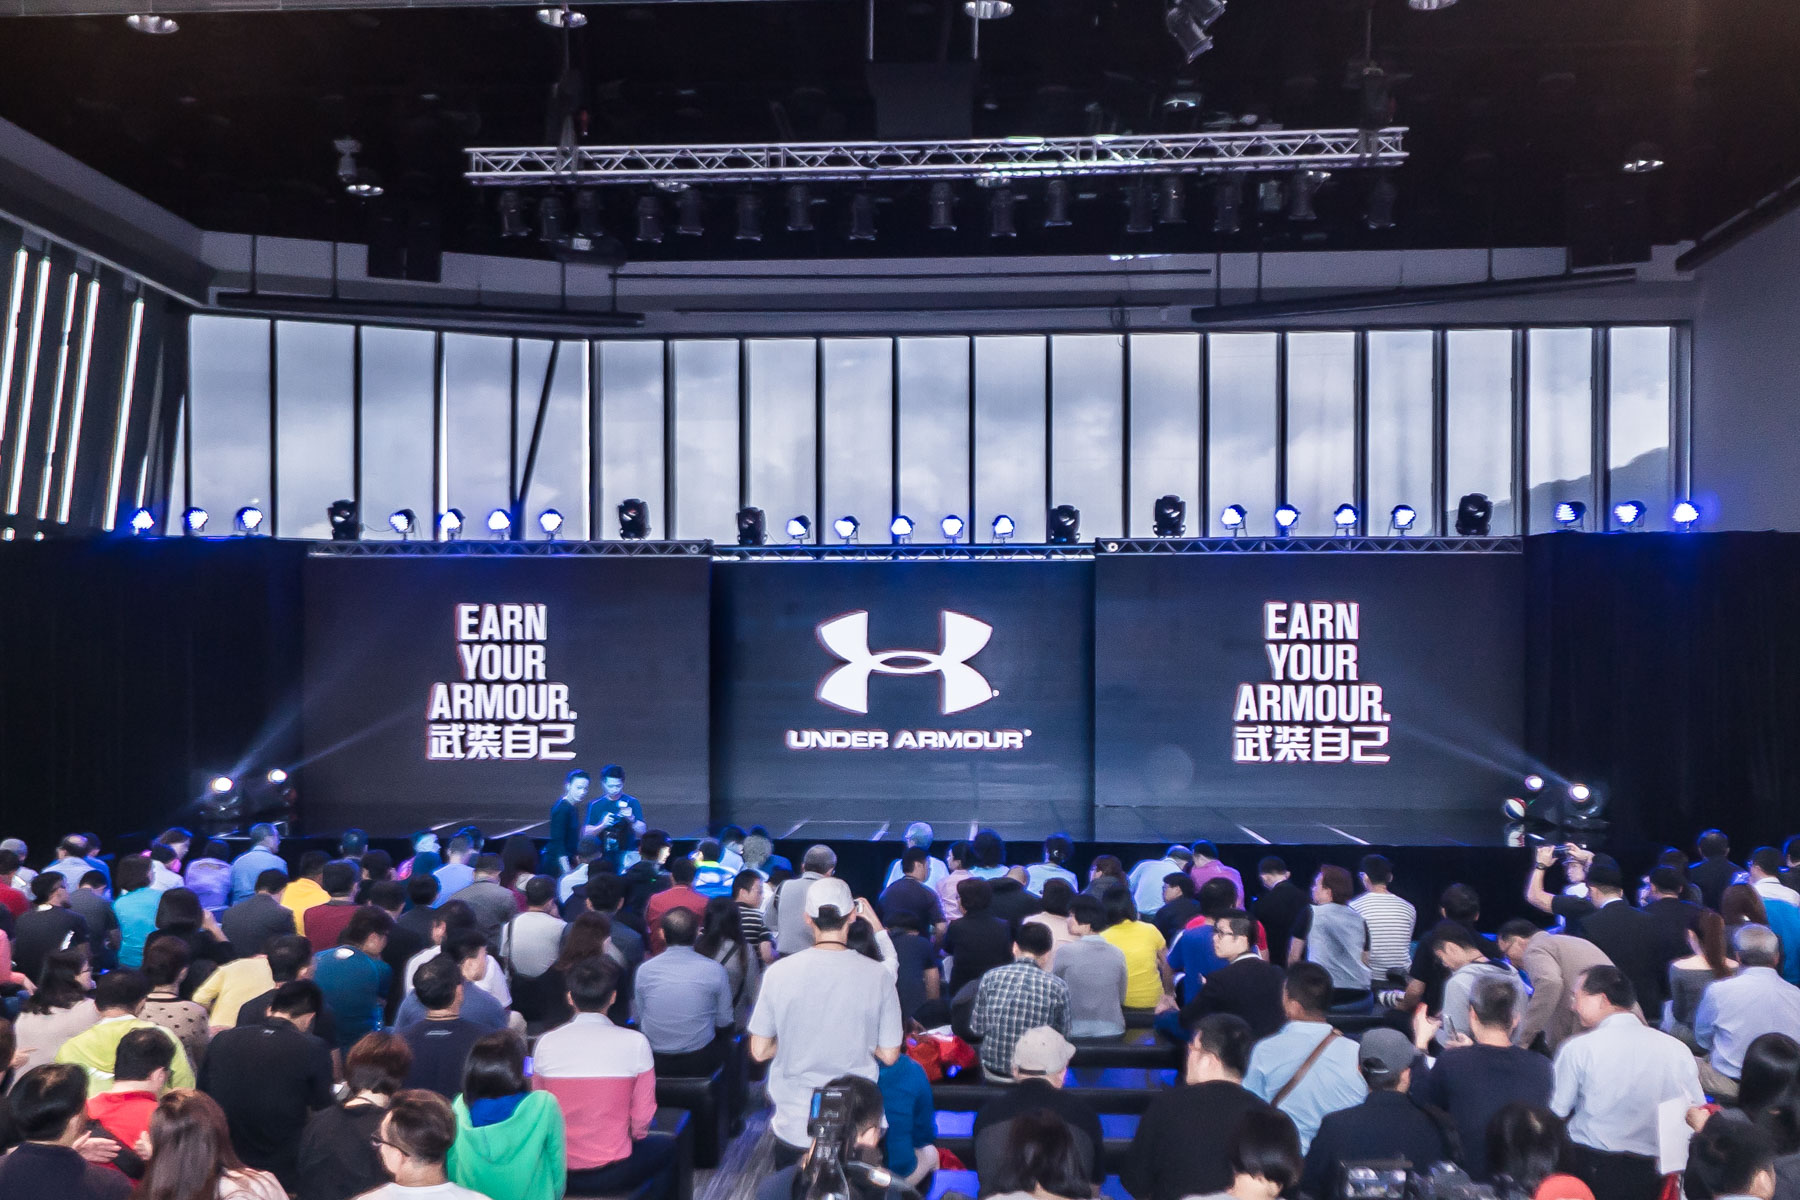 under armour brand day 2015